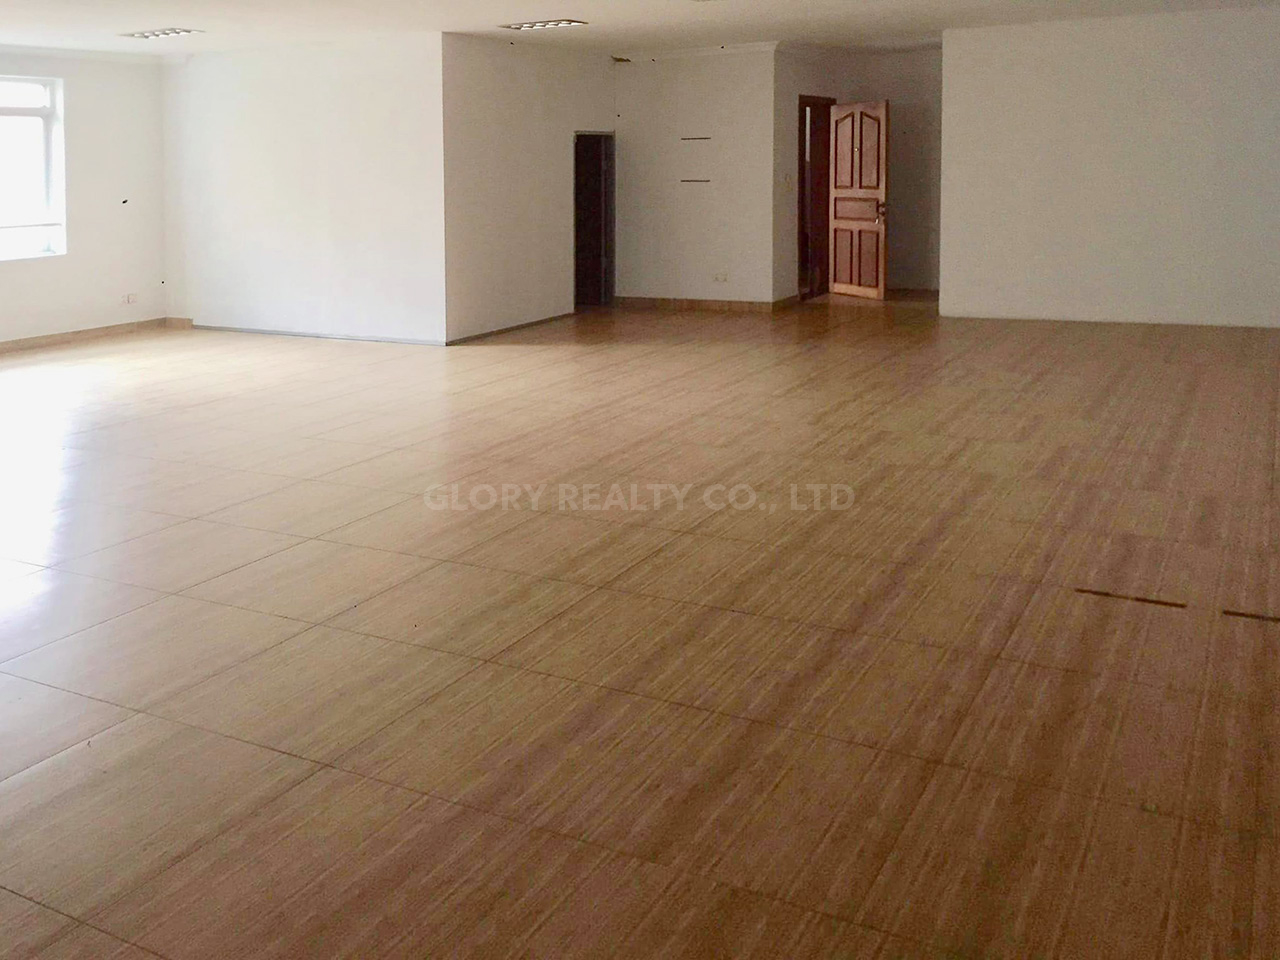 95 Sq m office space for rent @ Boeng Keng Kang 3 area